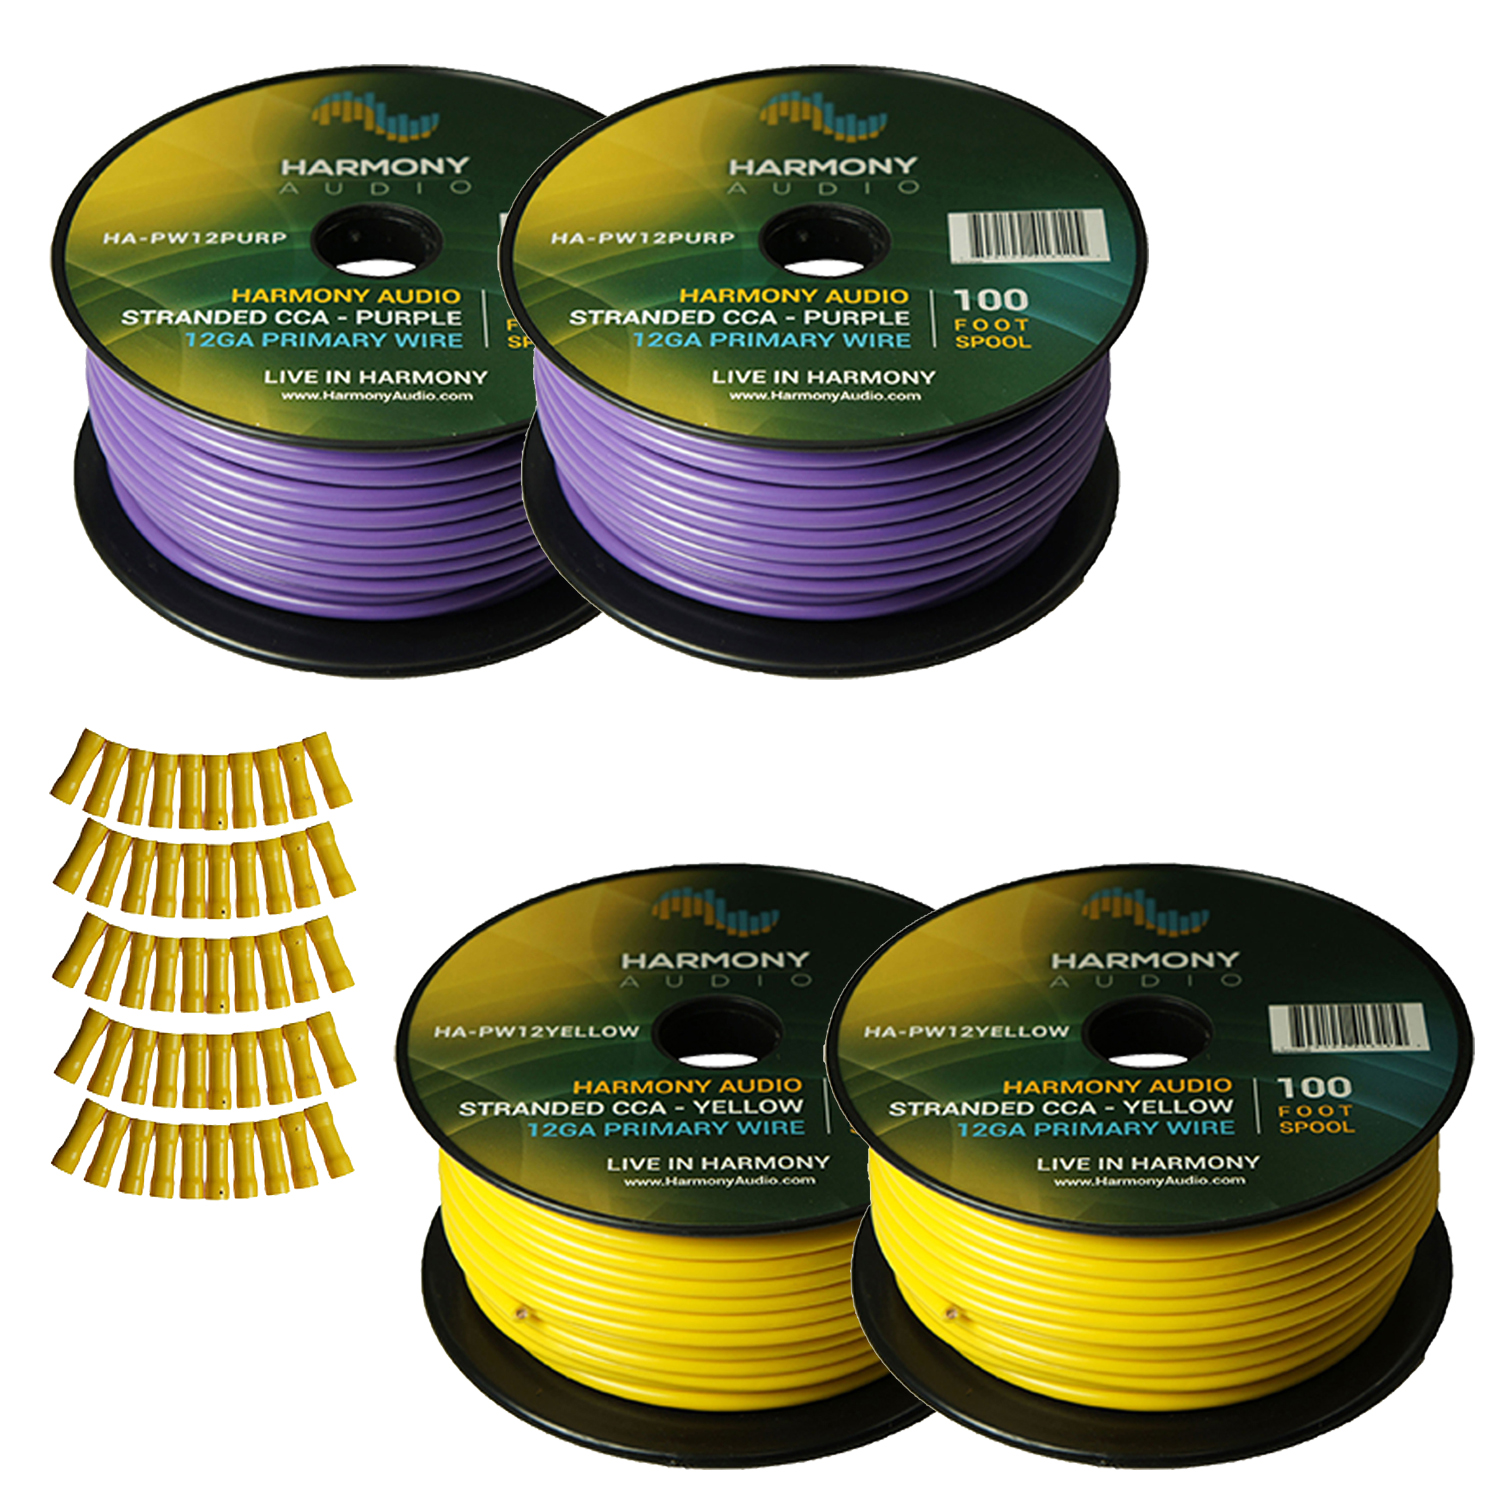 Harmony Audio Primary Single Conductor 12 Gauge Power or Ground Wire - 4 Rolls - 400 Feet - Yellow & Purple for Car Audio / Trailer / Model Train / Remote